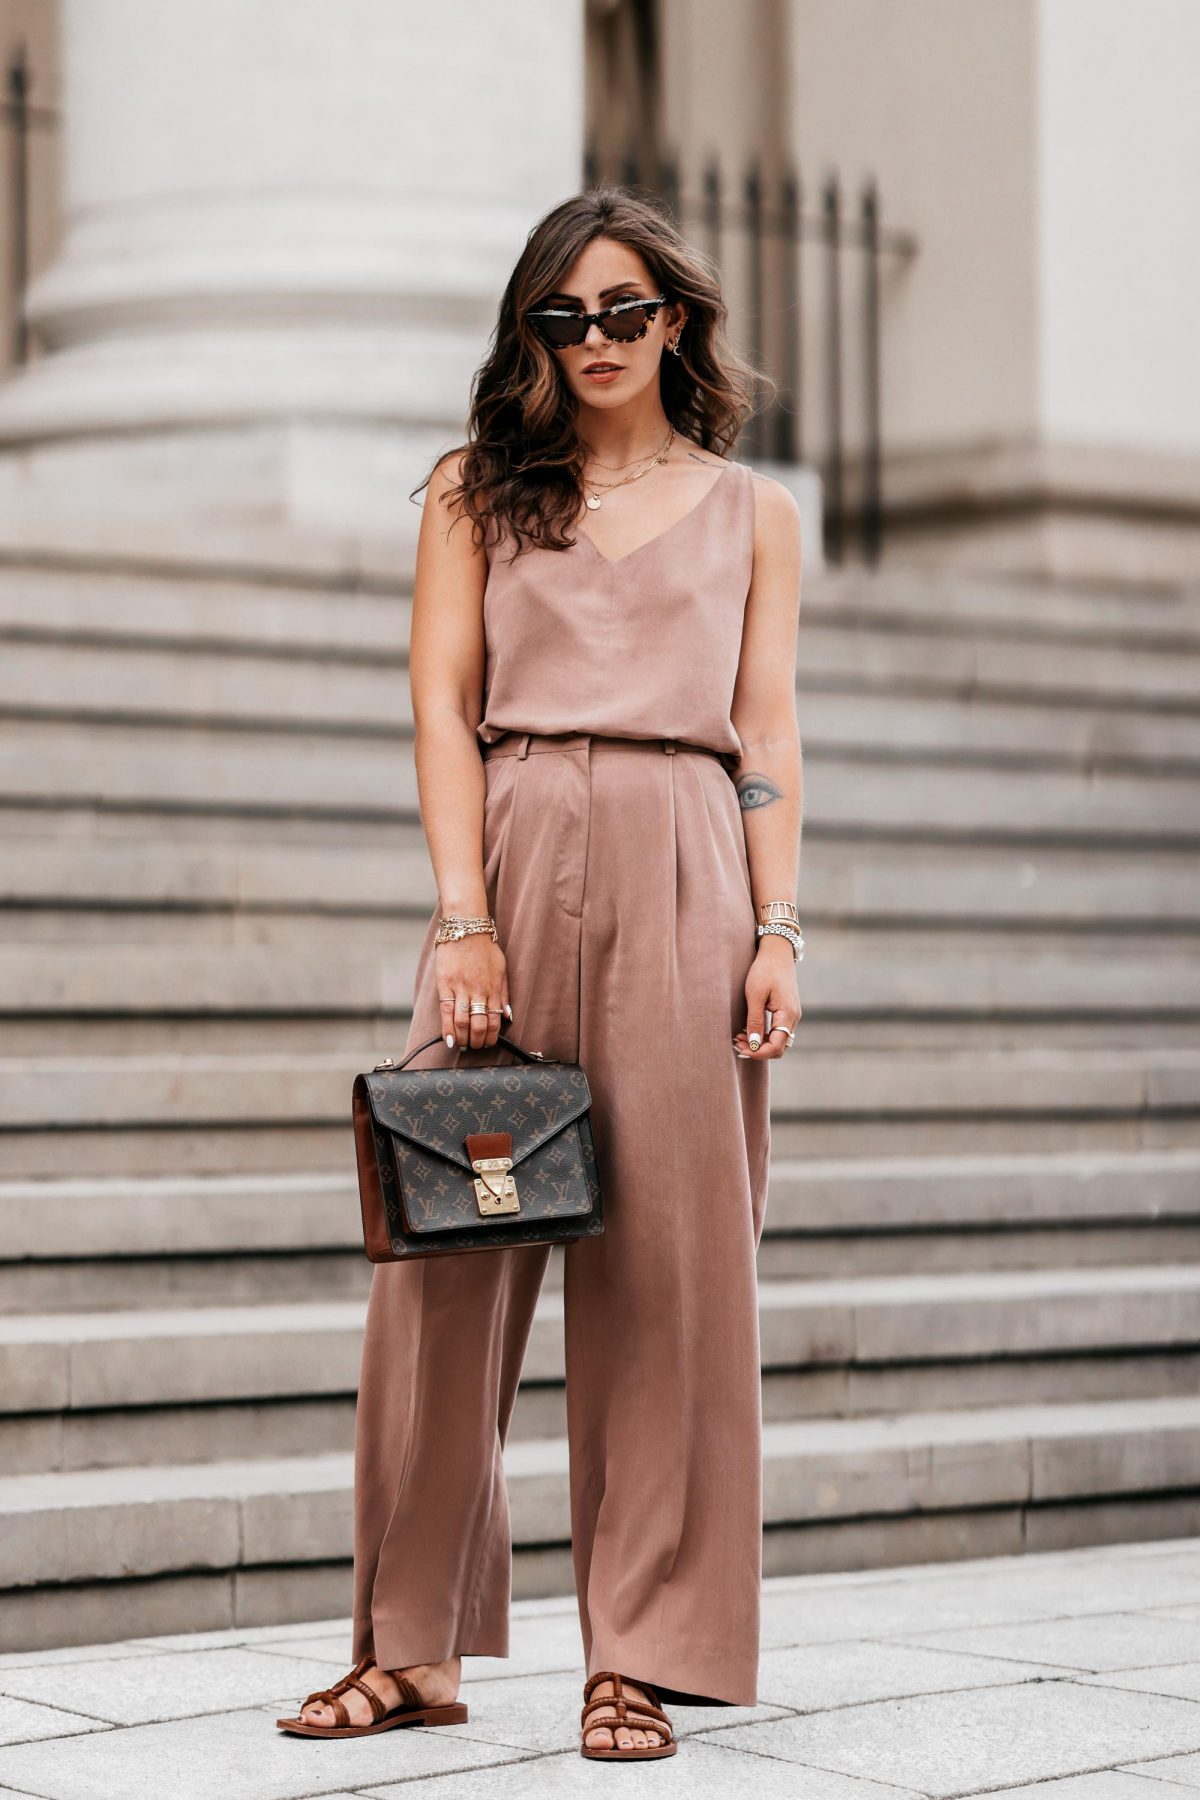 The Two-Pieces Look